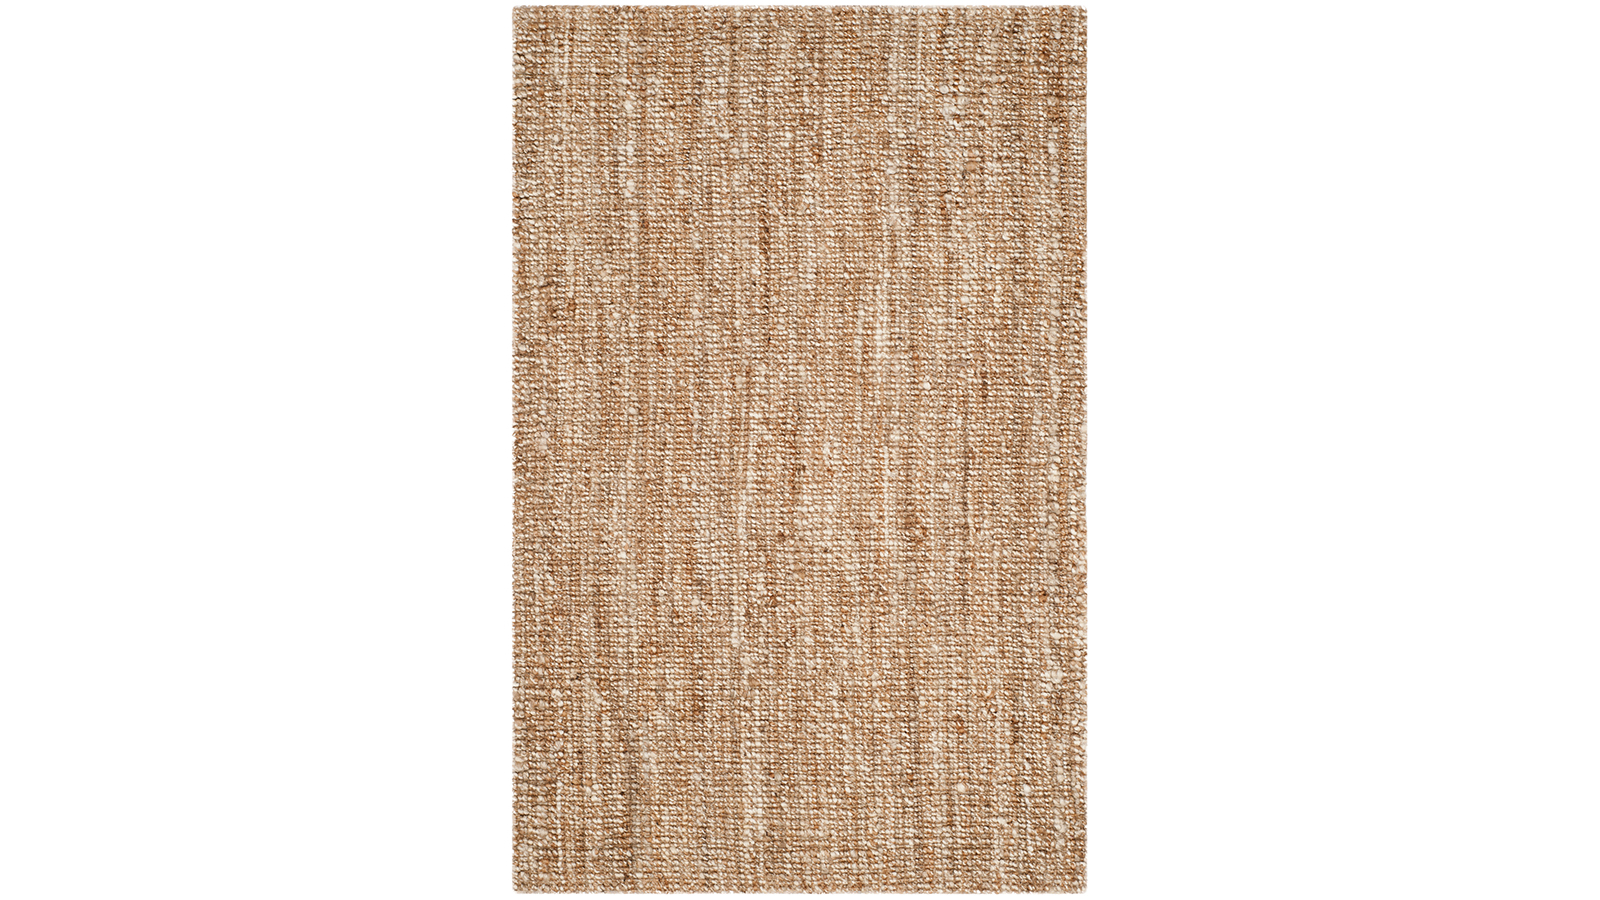 Best Rugs At Wayfair 12 Crazy Popular Designs Cnn Underscored